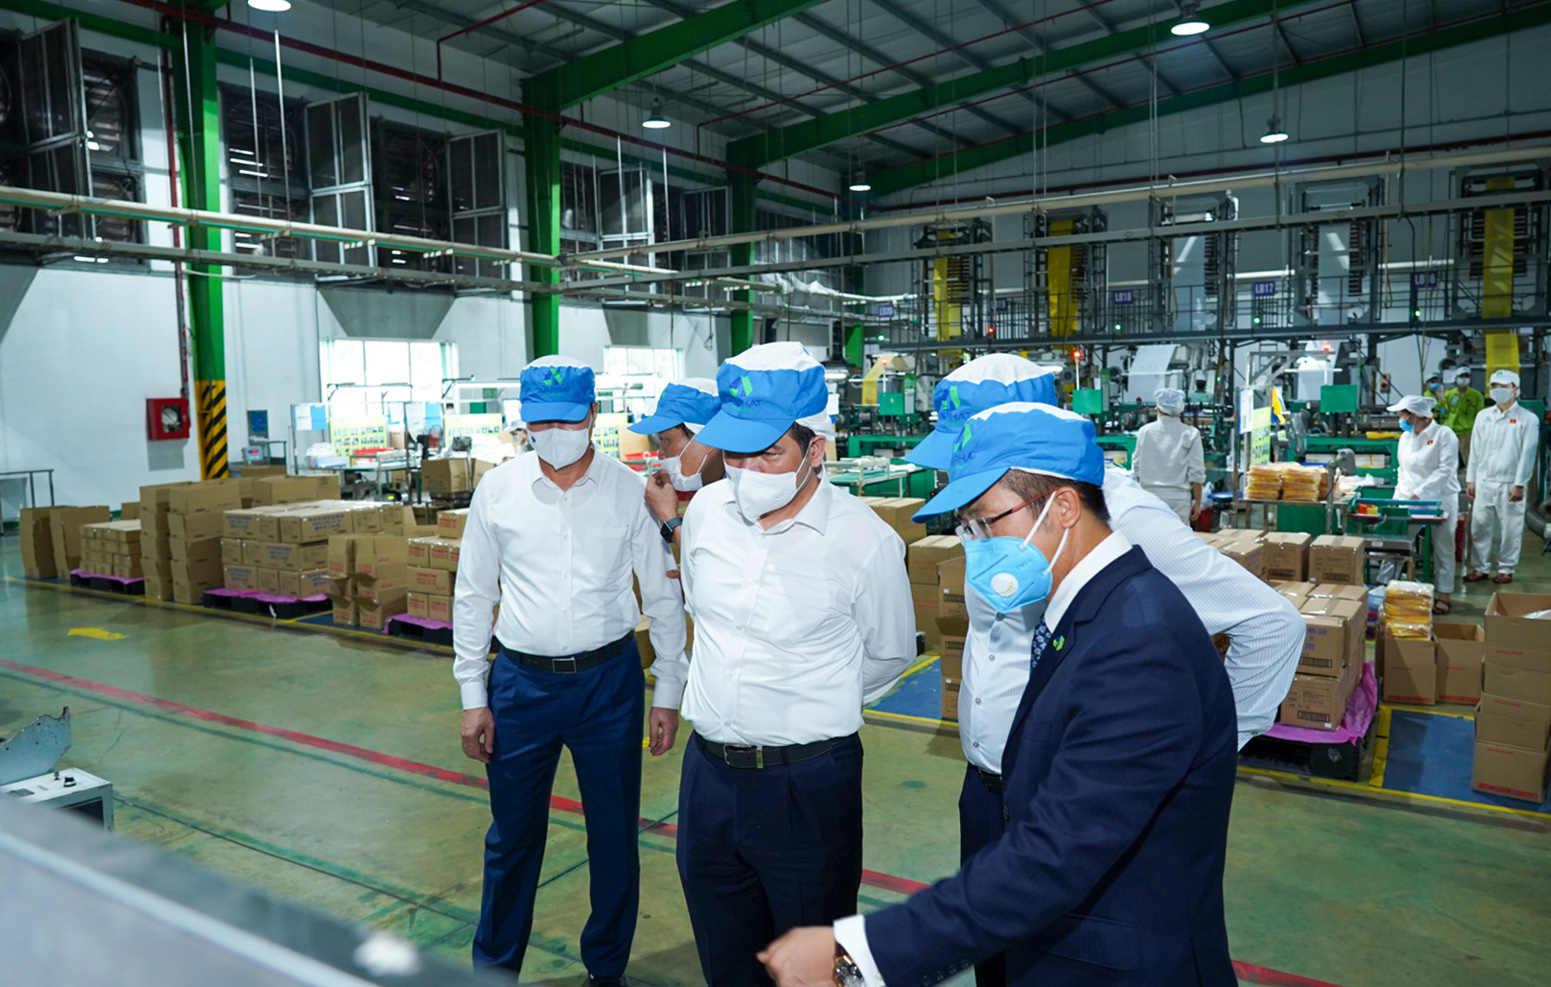 Vice Chairman, CEO Dinh Xuan Cuong introduces An Phat Holdings' manufacturing plant to the delegation